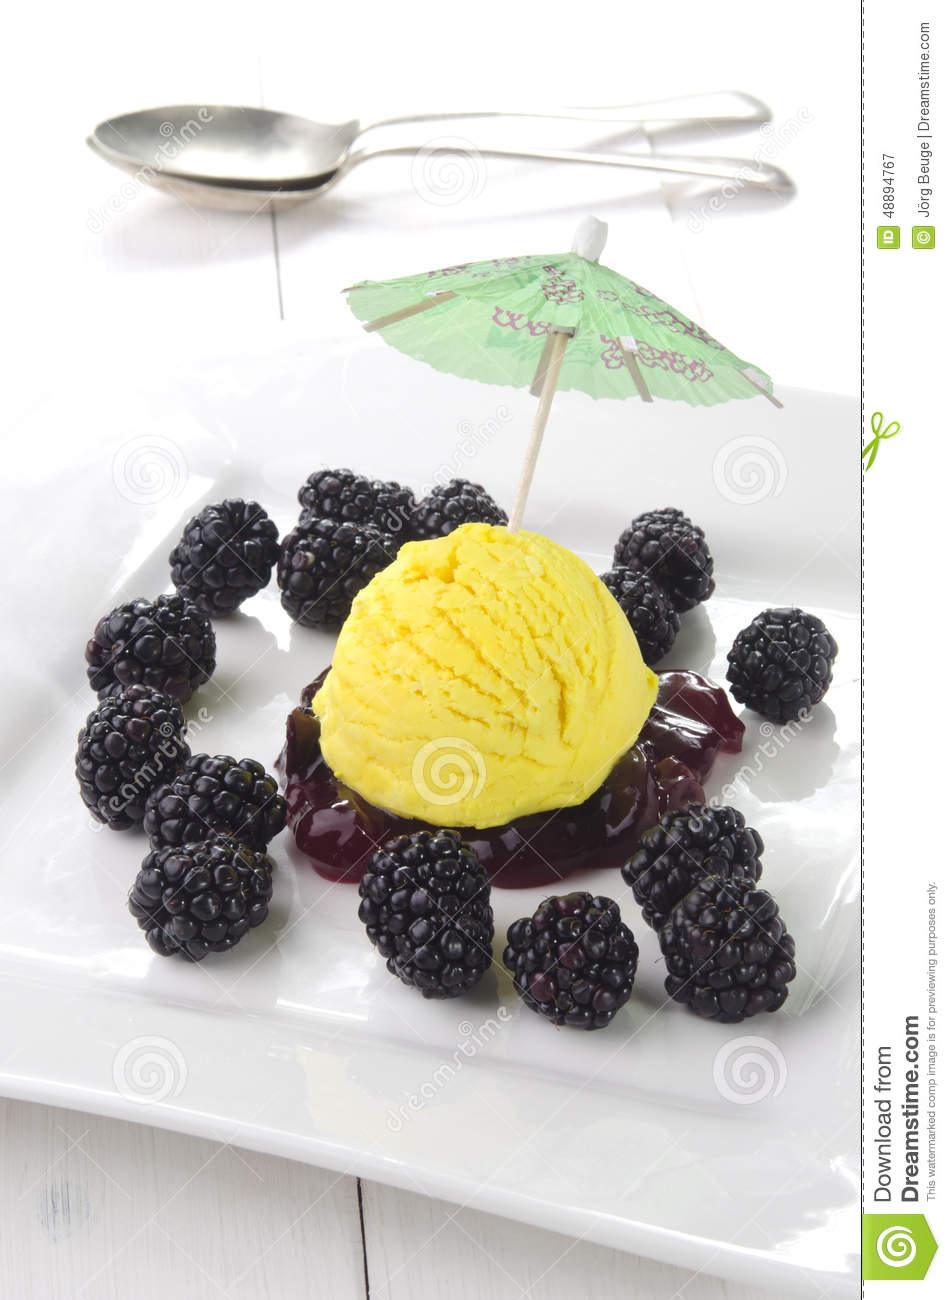 Lemon Cream With Blackberries Recipe — Dishmaps